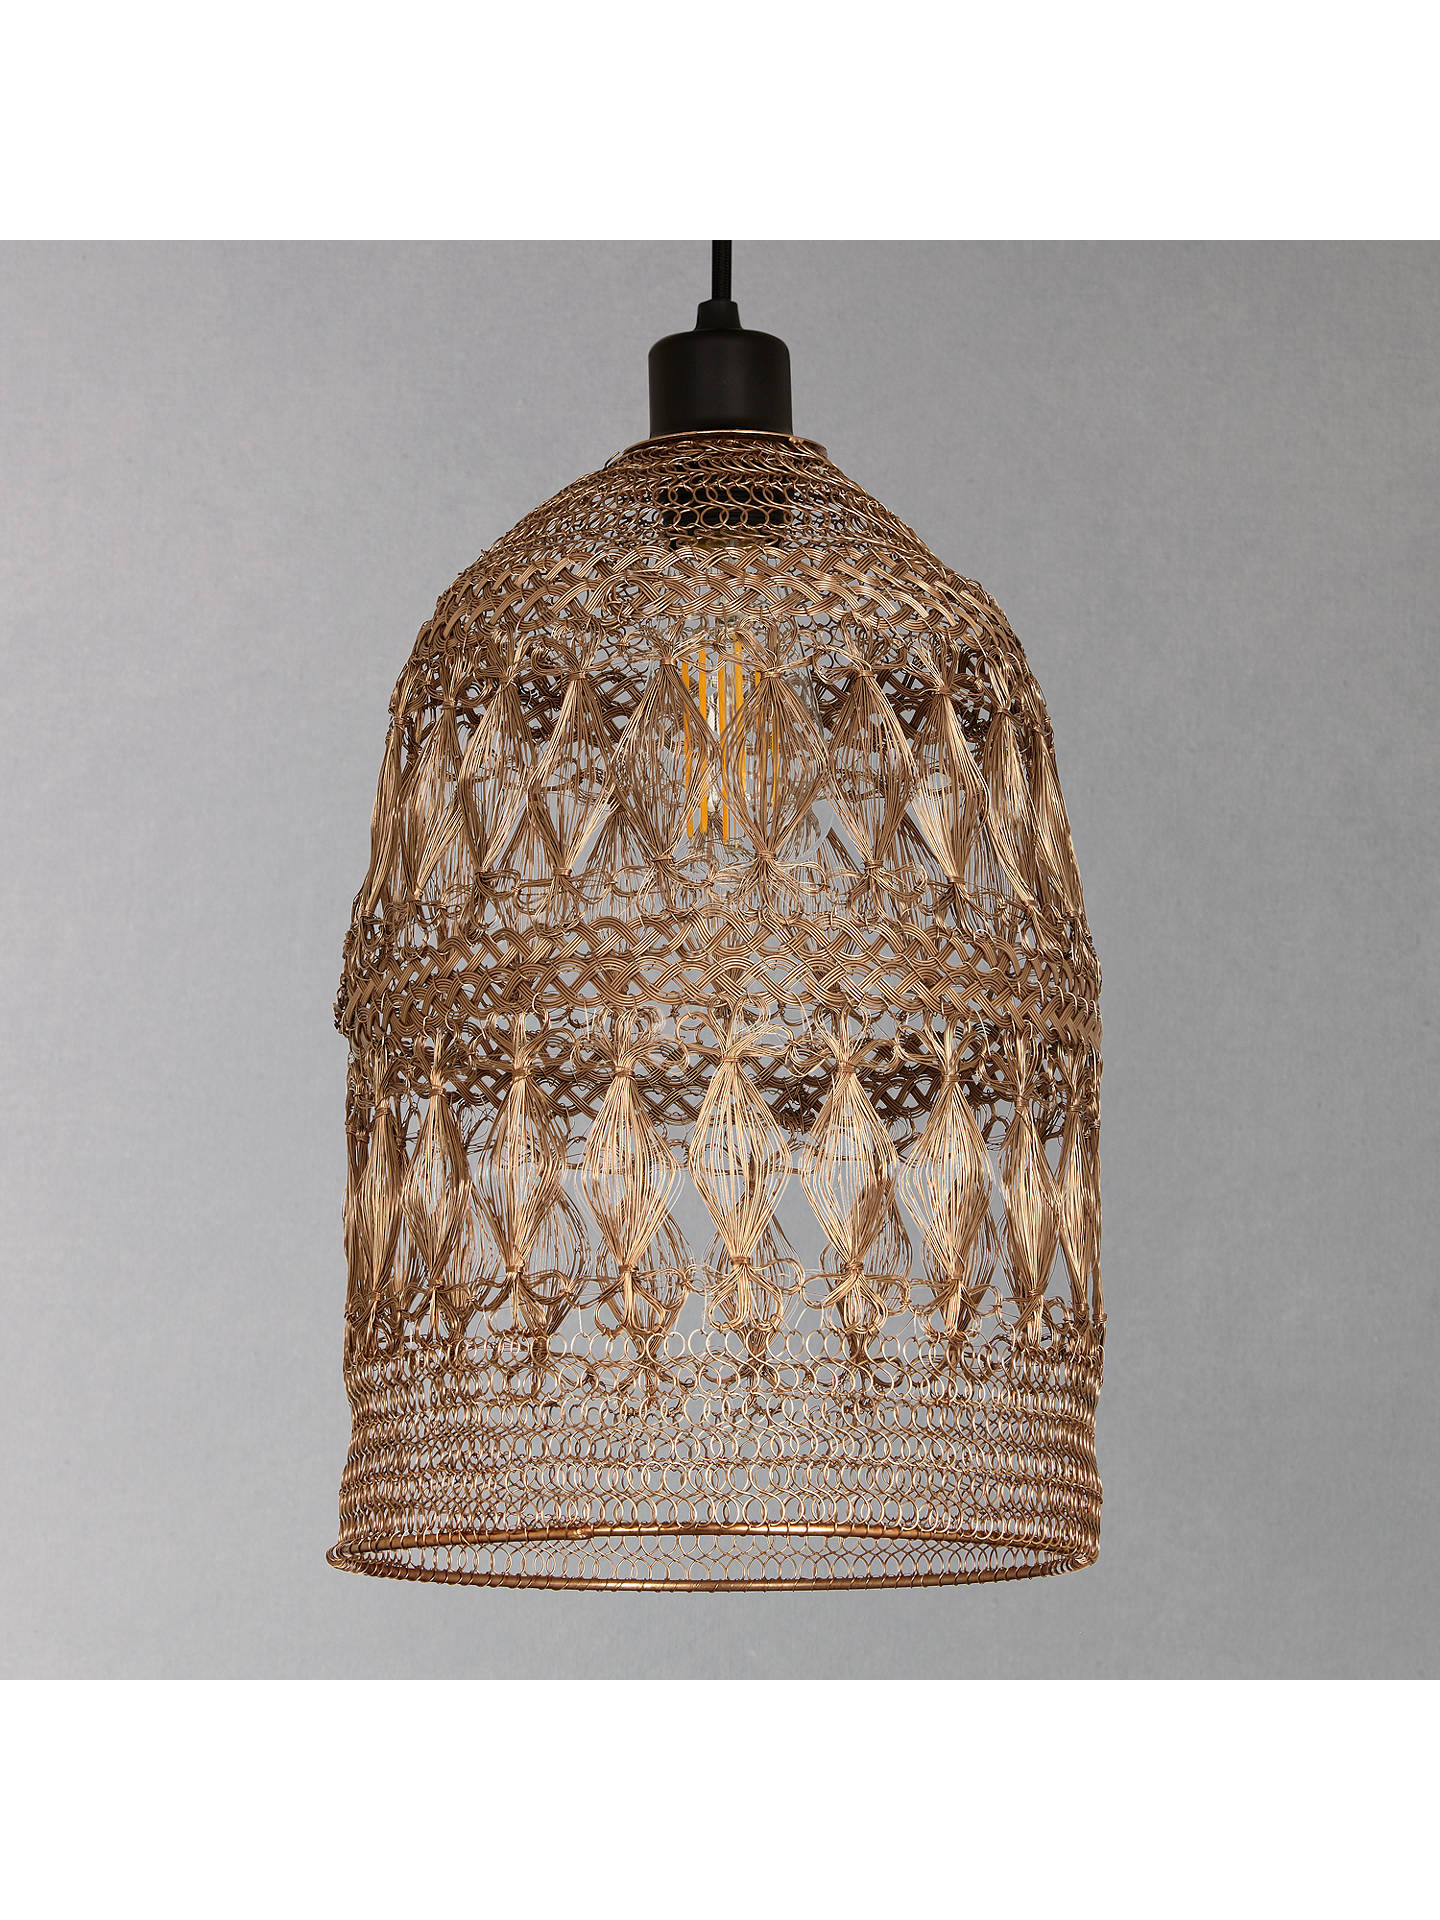 BuyJohn Lewis & Partners Papri Easy-to-Fit Steel Ceiling Shade, Copper Online at johnlewis.com